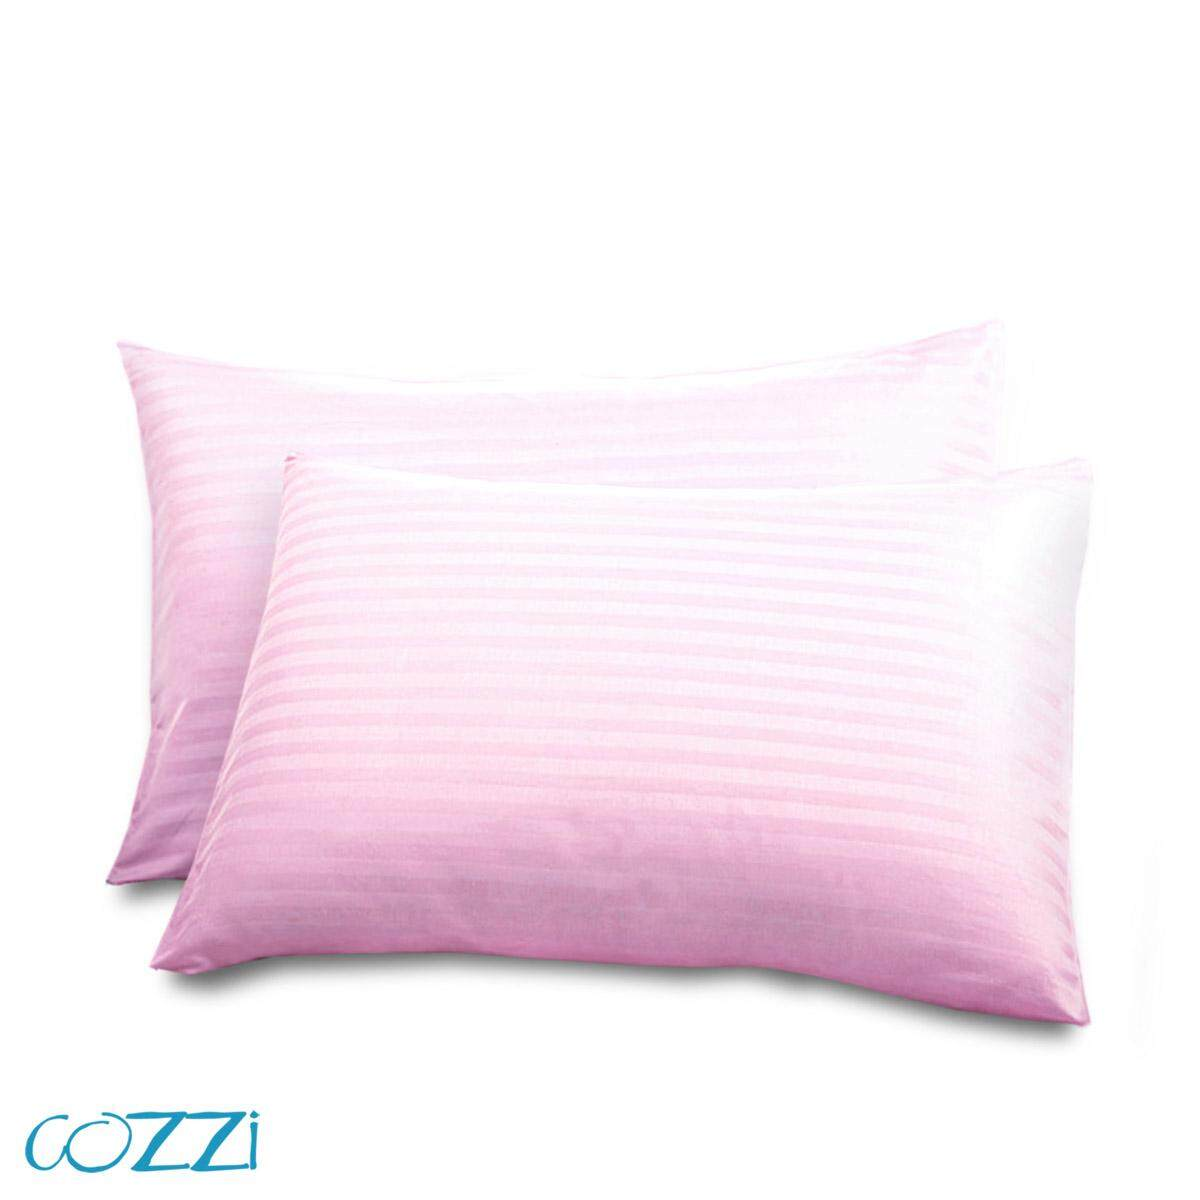 50727f1b5275 Extra Pillow Cases Cover   Rainbow Microfiber 2PCS PACK (Pillow is not  included